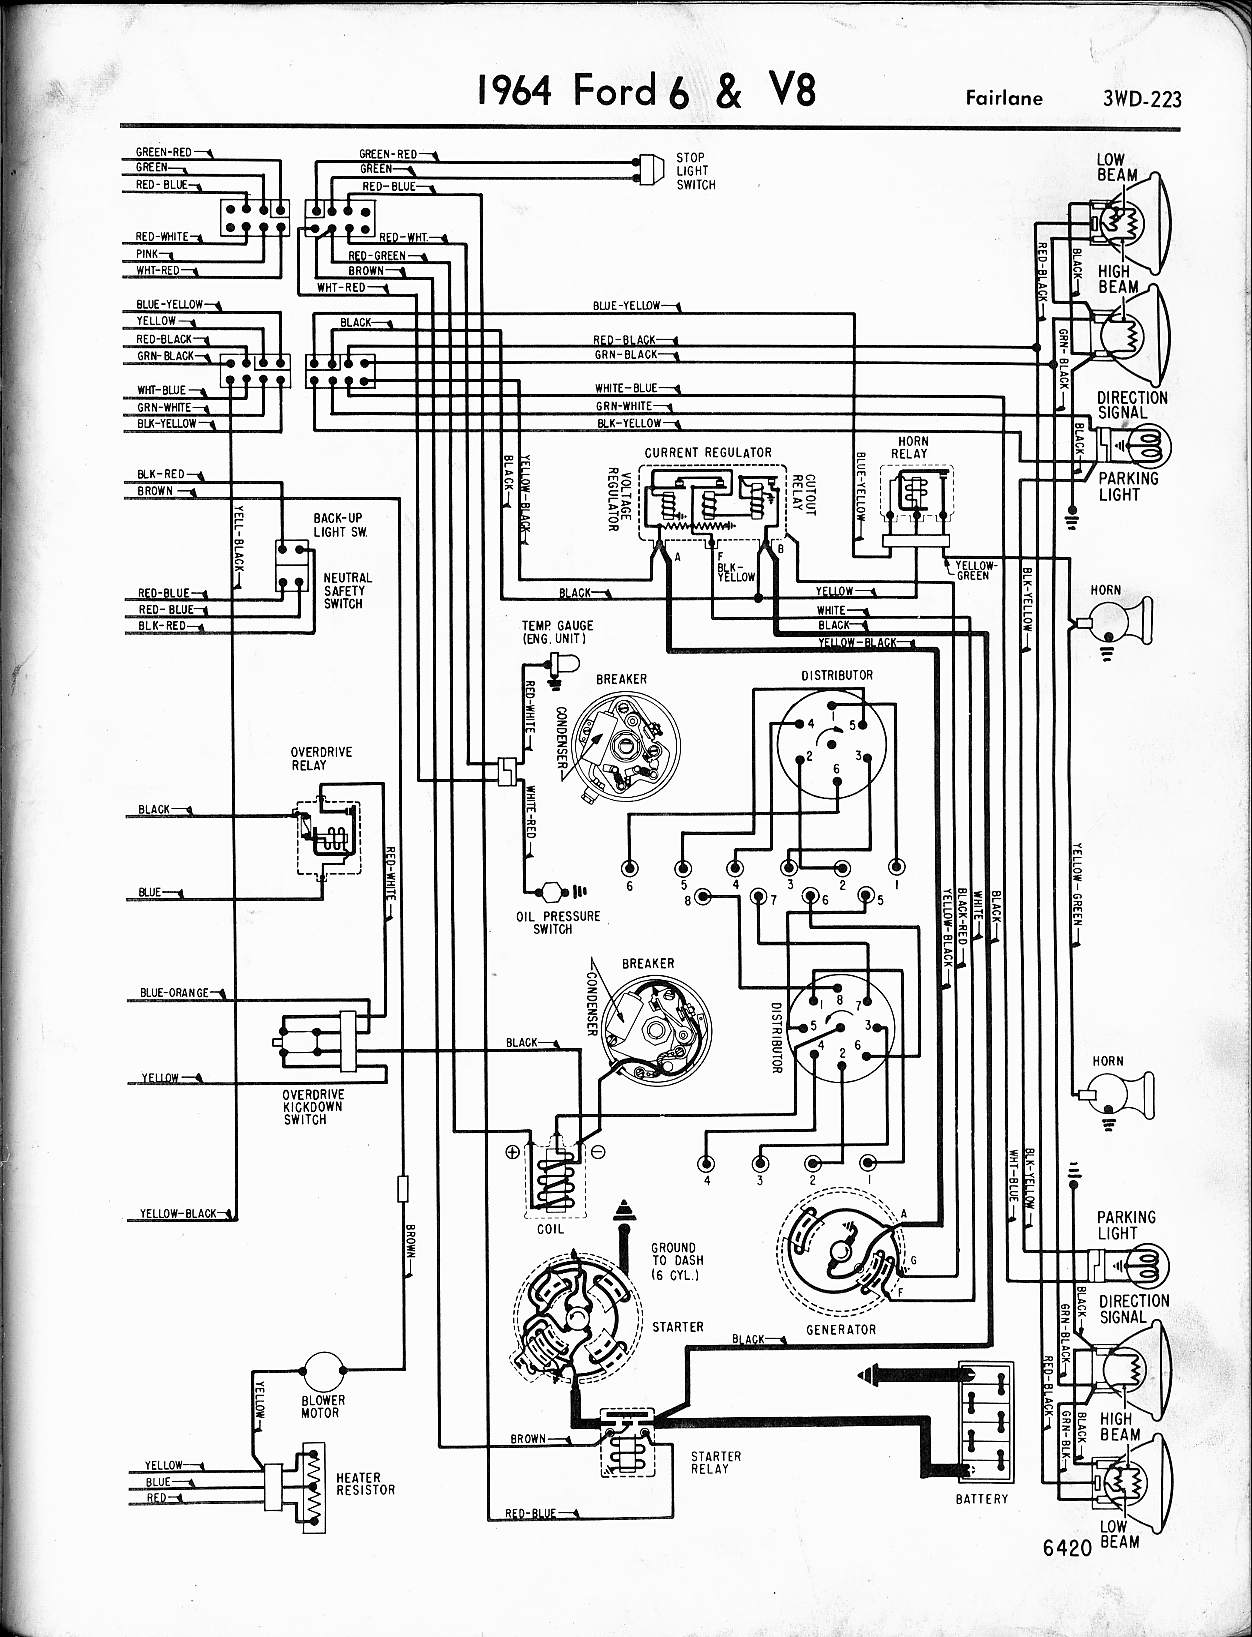 57-65 Ford Wiring Diagrams | Ford Thunderbird Wiring Diagrams |  | The Old Car Manual Project